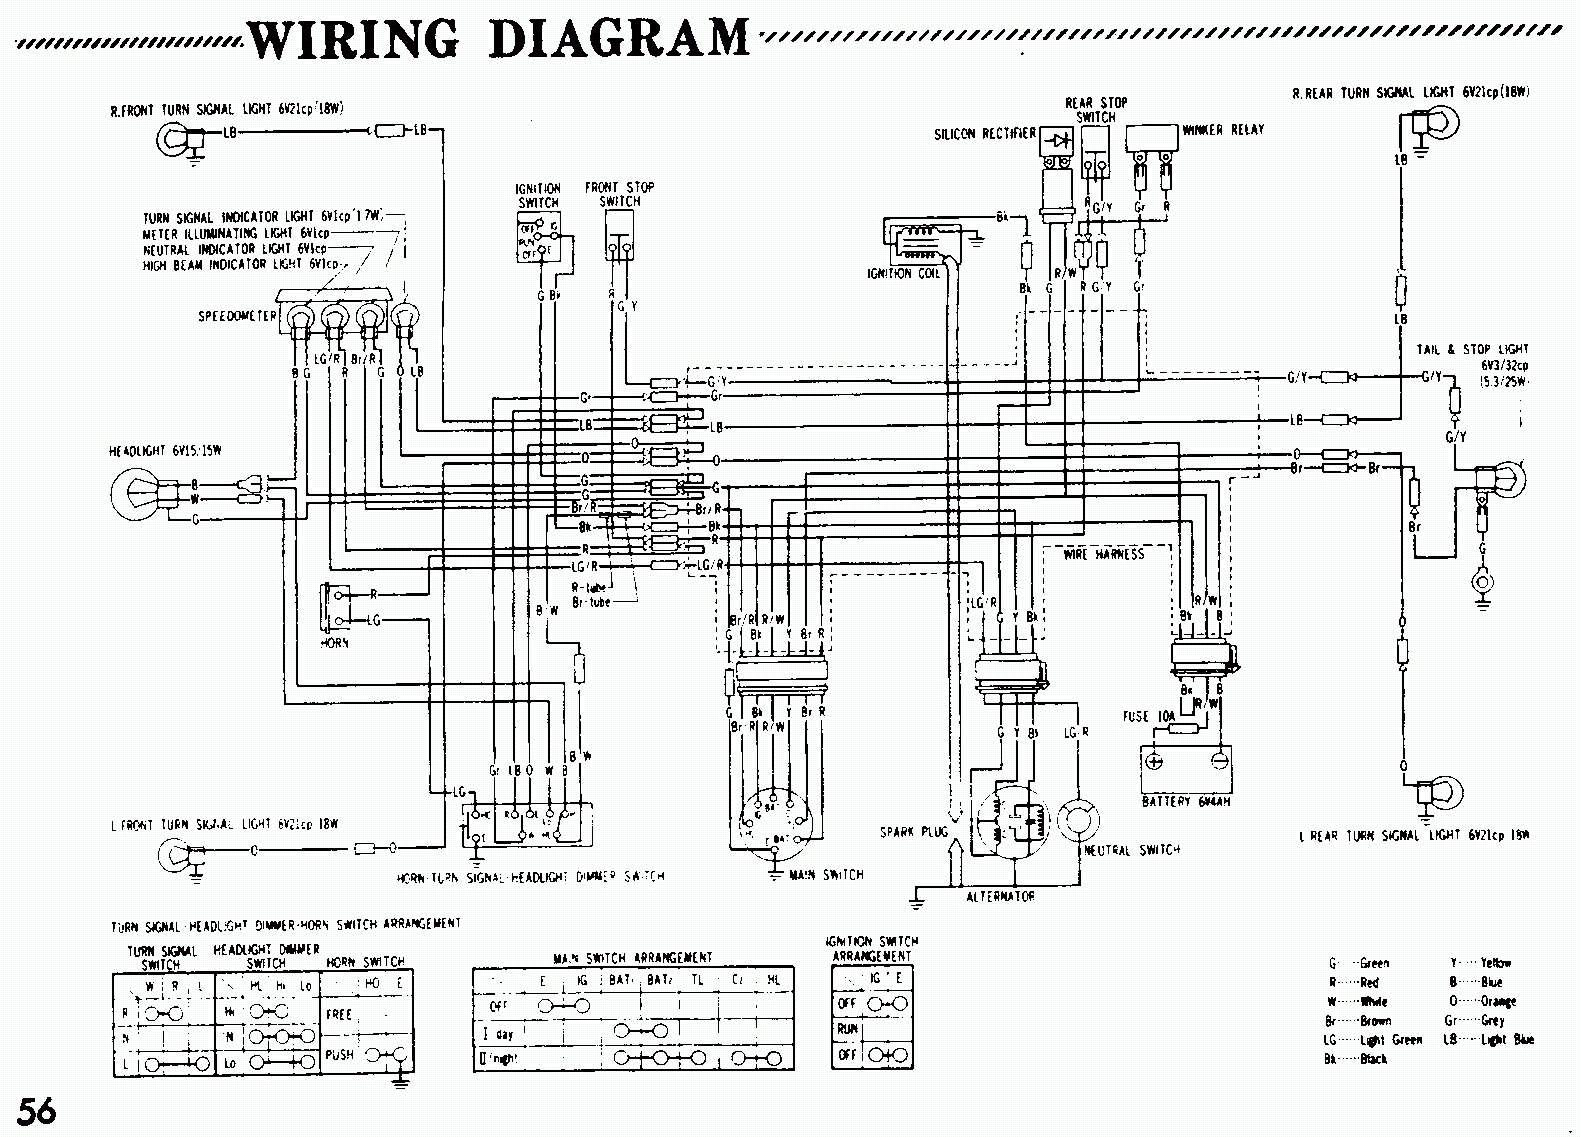 80 Wiring Diagrams together with XX4m 18132 moreover 732vg Grandson Pulled Couple Fuel Lines Off Carborator further Gsarchive bwringer also 01 Yamaha R1 Wiring Diagram. on kawasaki motorcycle wiring diagrams